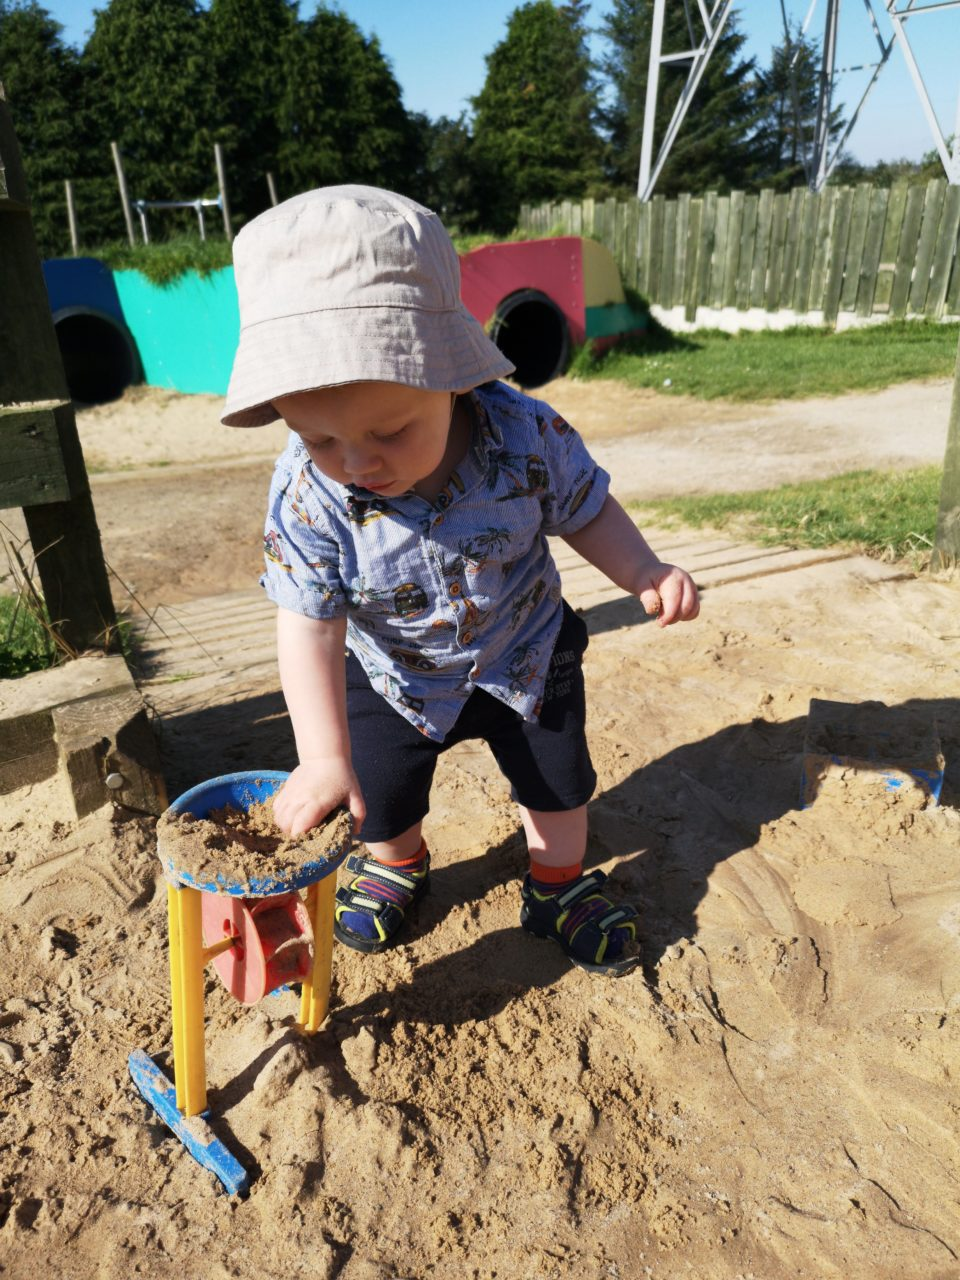 Toddler in a sand pit